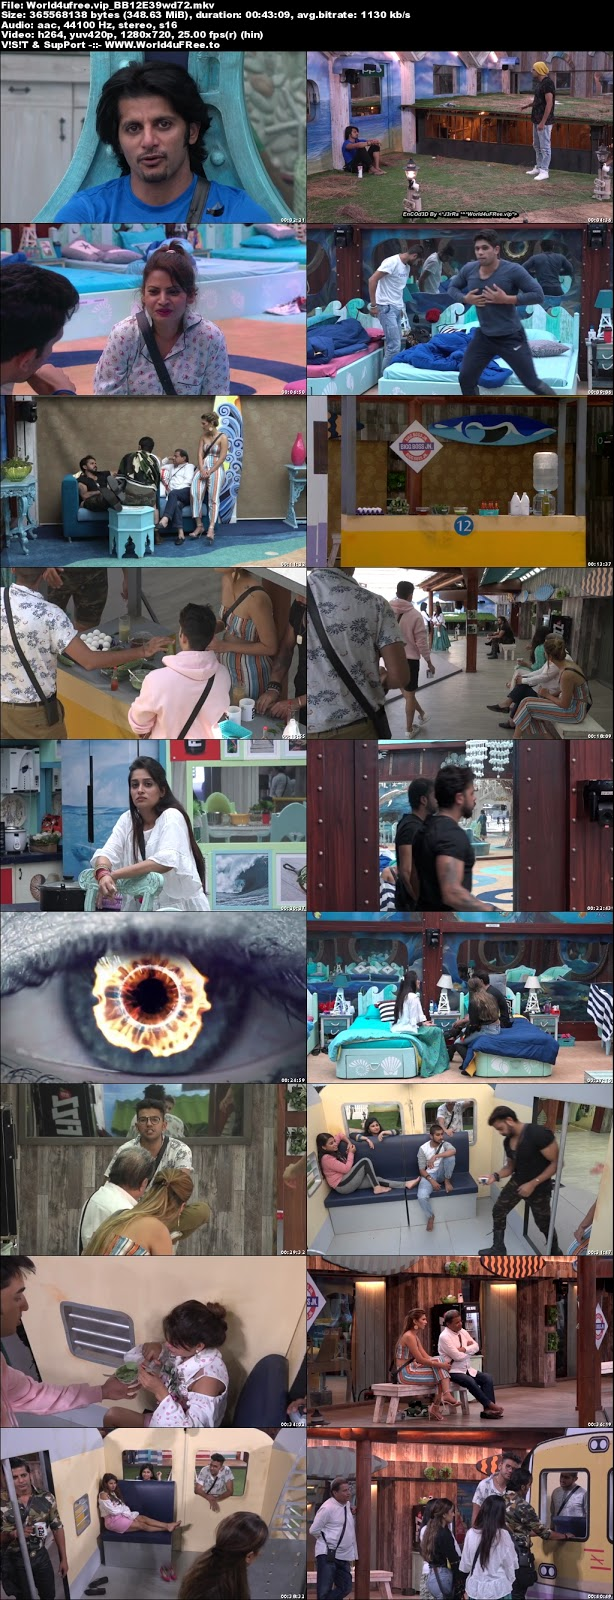 Bigg Boss 12 Episode 39 25 October 2018 720p WEBRip 350Mb x264 world4ufree.fun tv show Episode 39 25 October 2018 world4ufree.fun 300mb 250mb 300mb compressed small size free download or watch online at world4ufree.fun